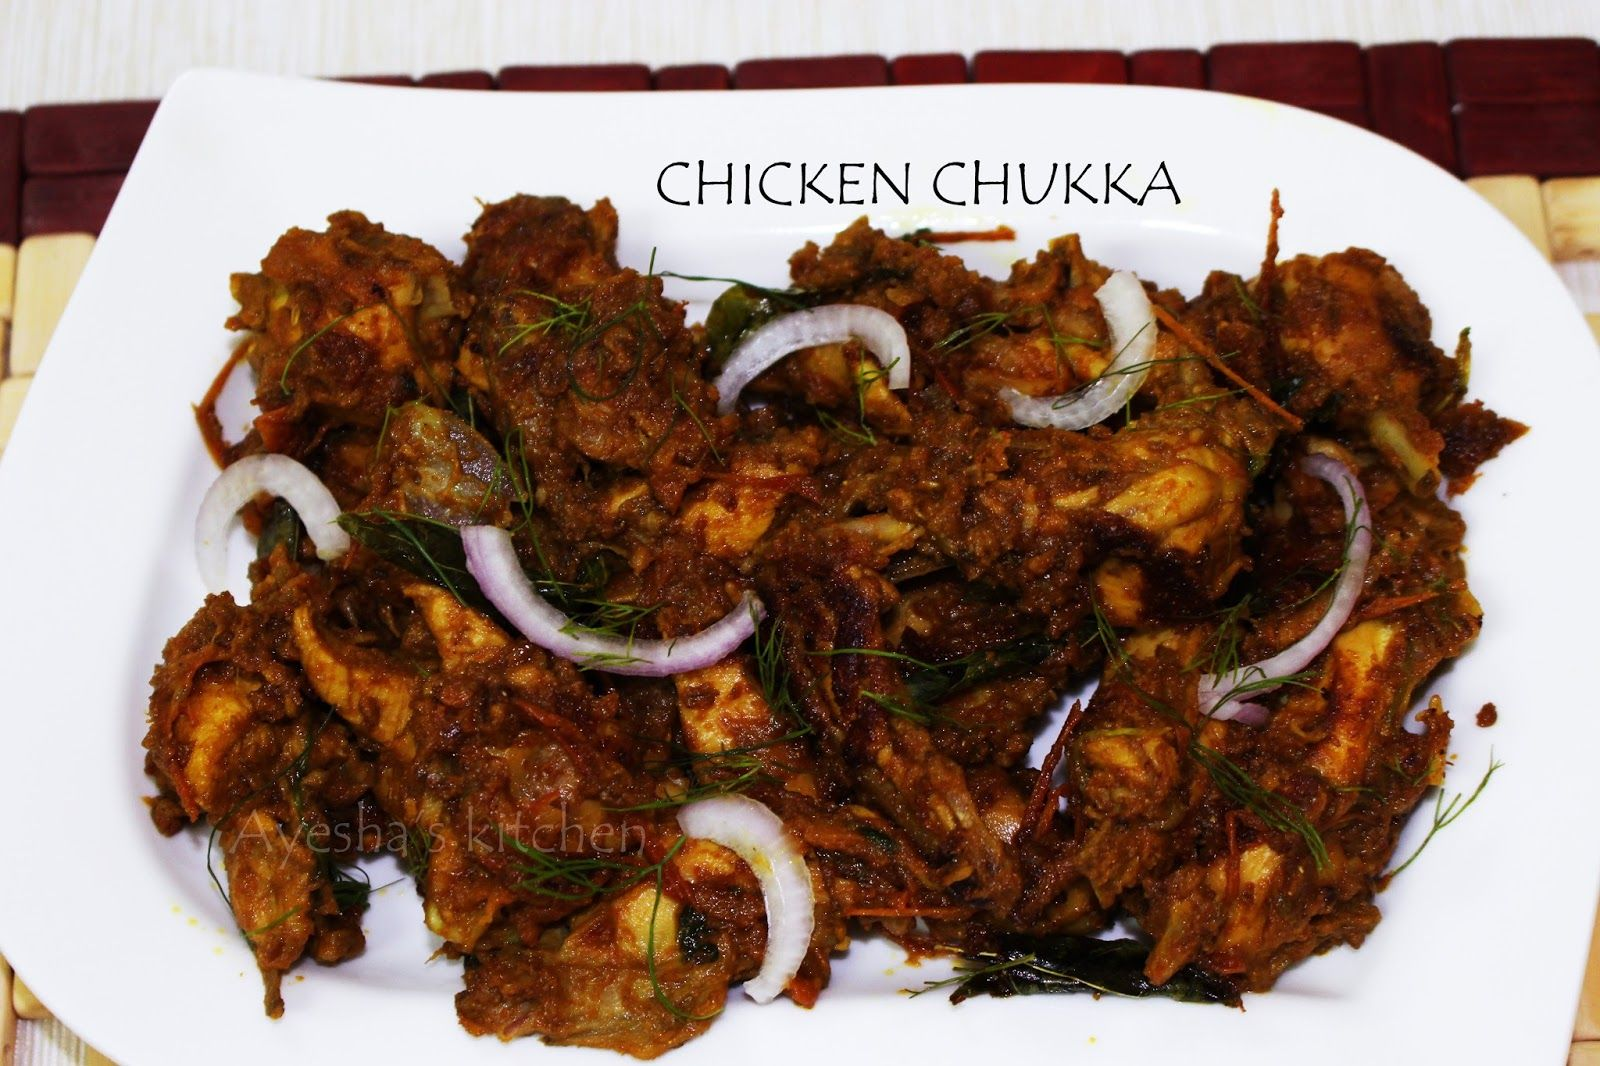 Chicken recipes chicken chukka chicken sukka recipe recipe welcome to ayeshas kitchen where you can find the easy to cook indian food recipes cuisine ideas find all your favorite indian food recipes here forumfinder Images